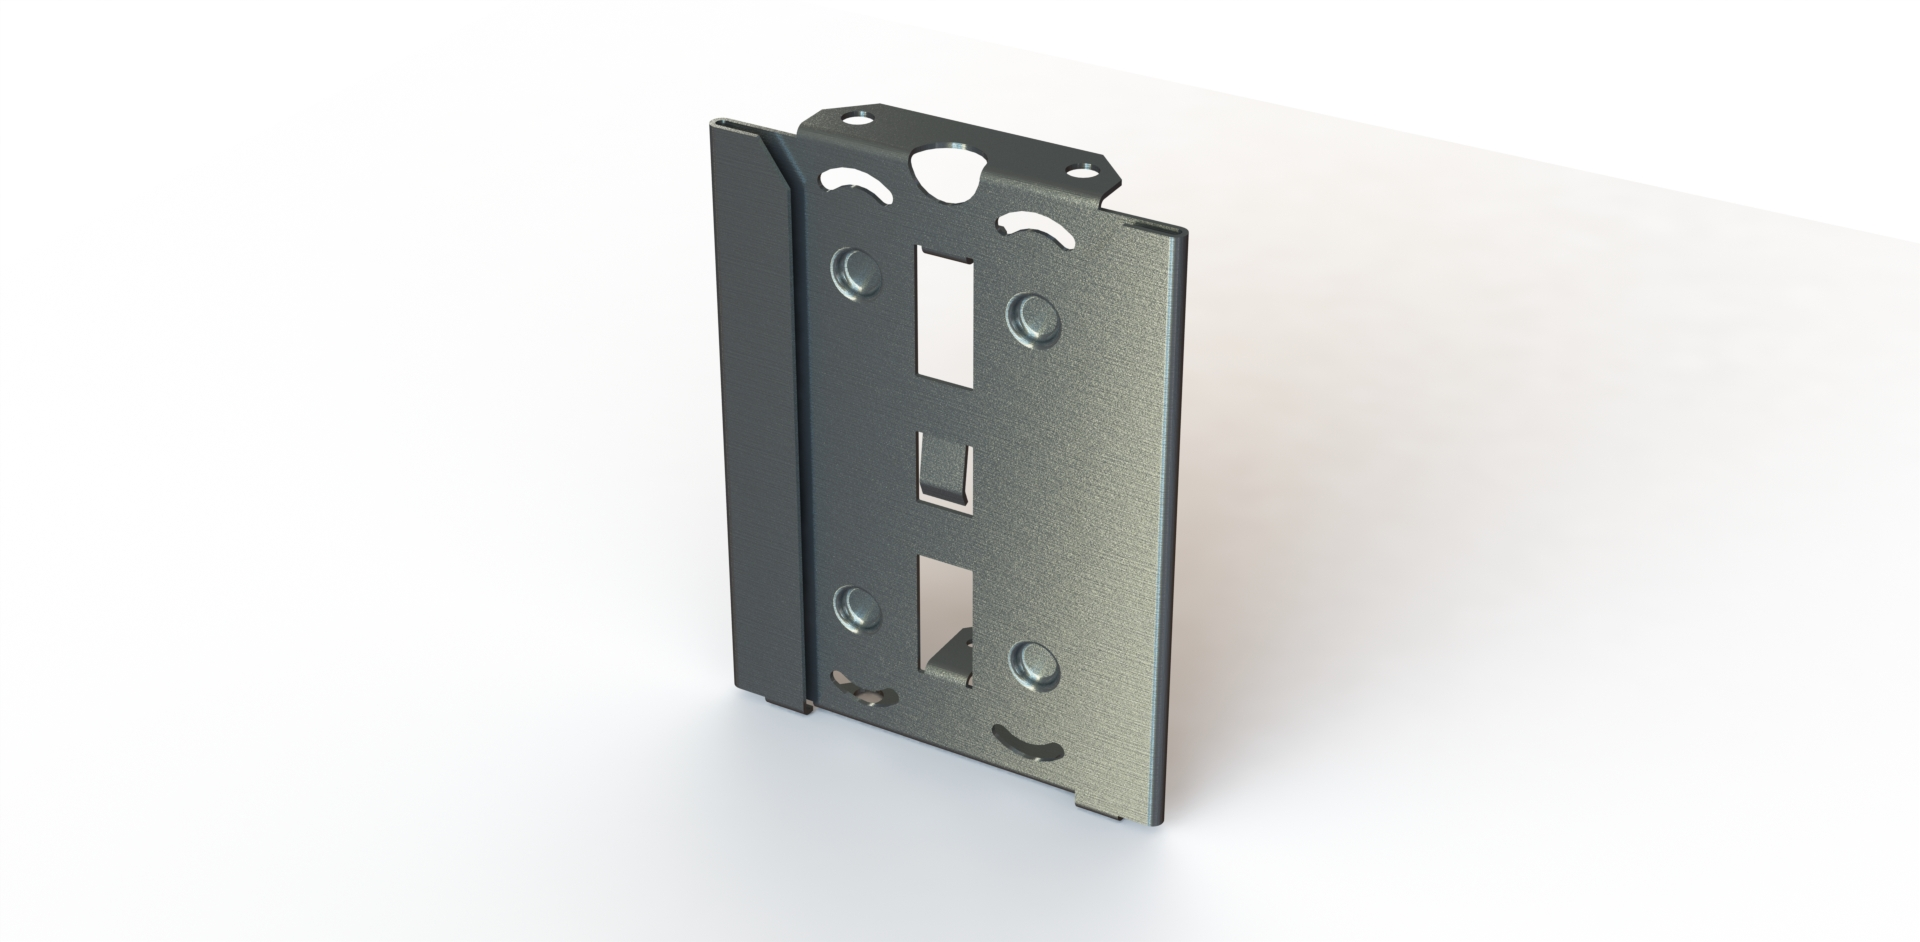 Sheet Metal Vs Stamped Metal Part What Is The Difference